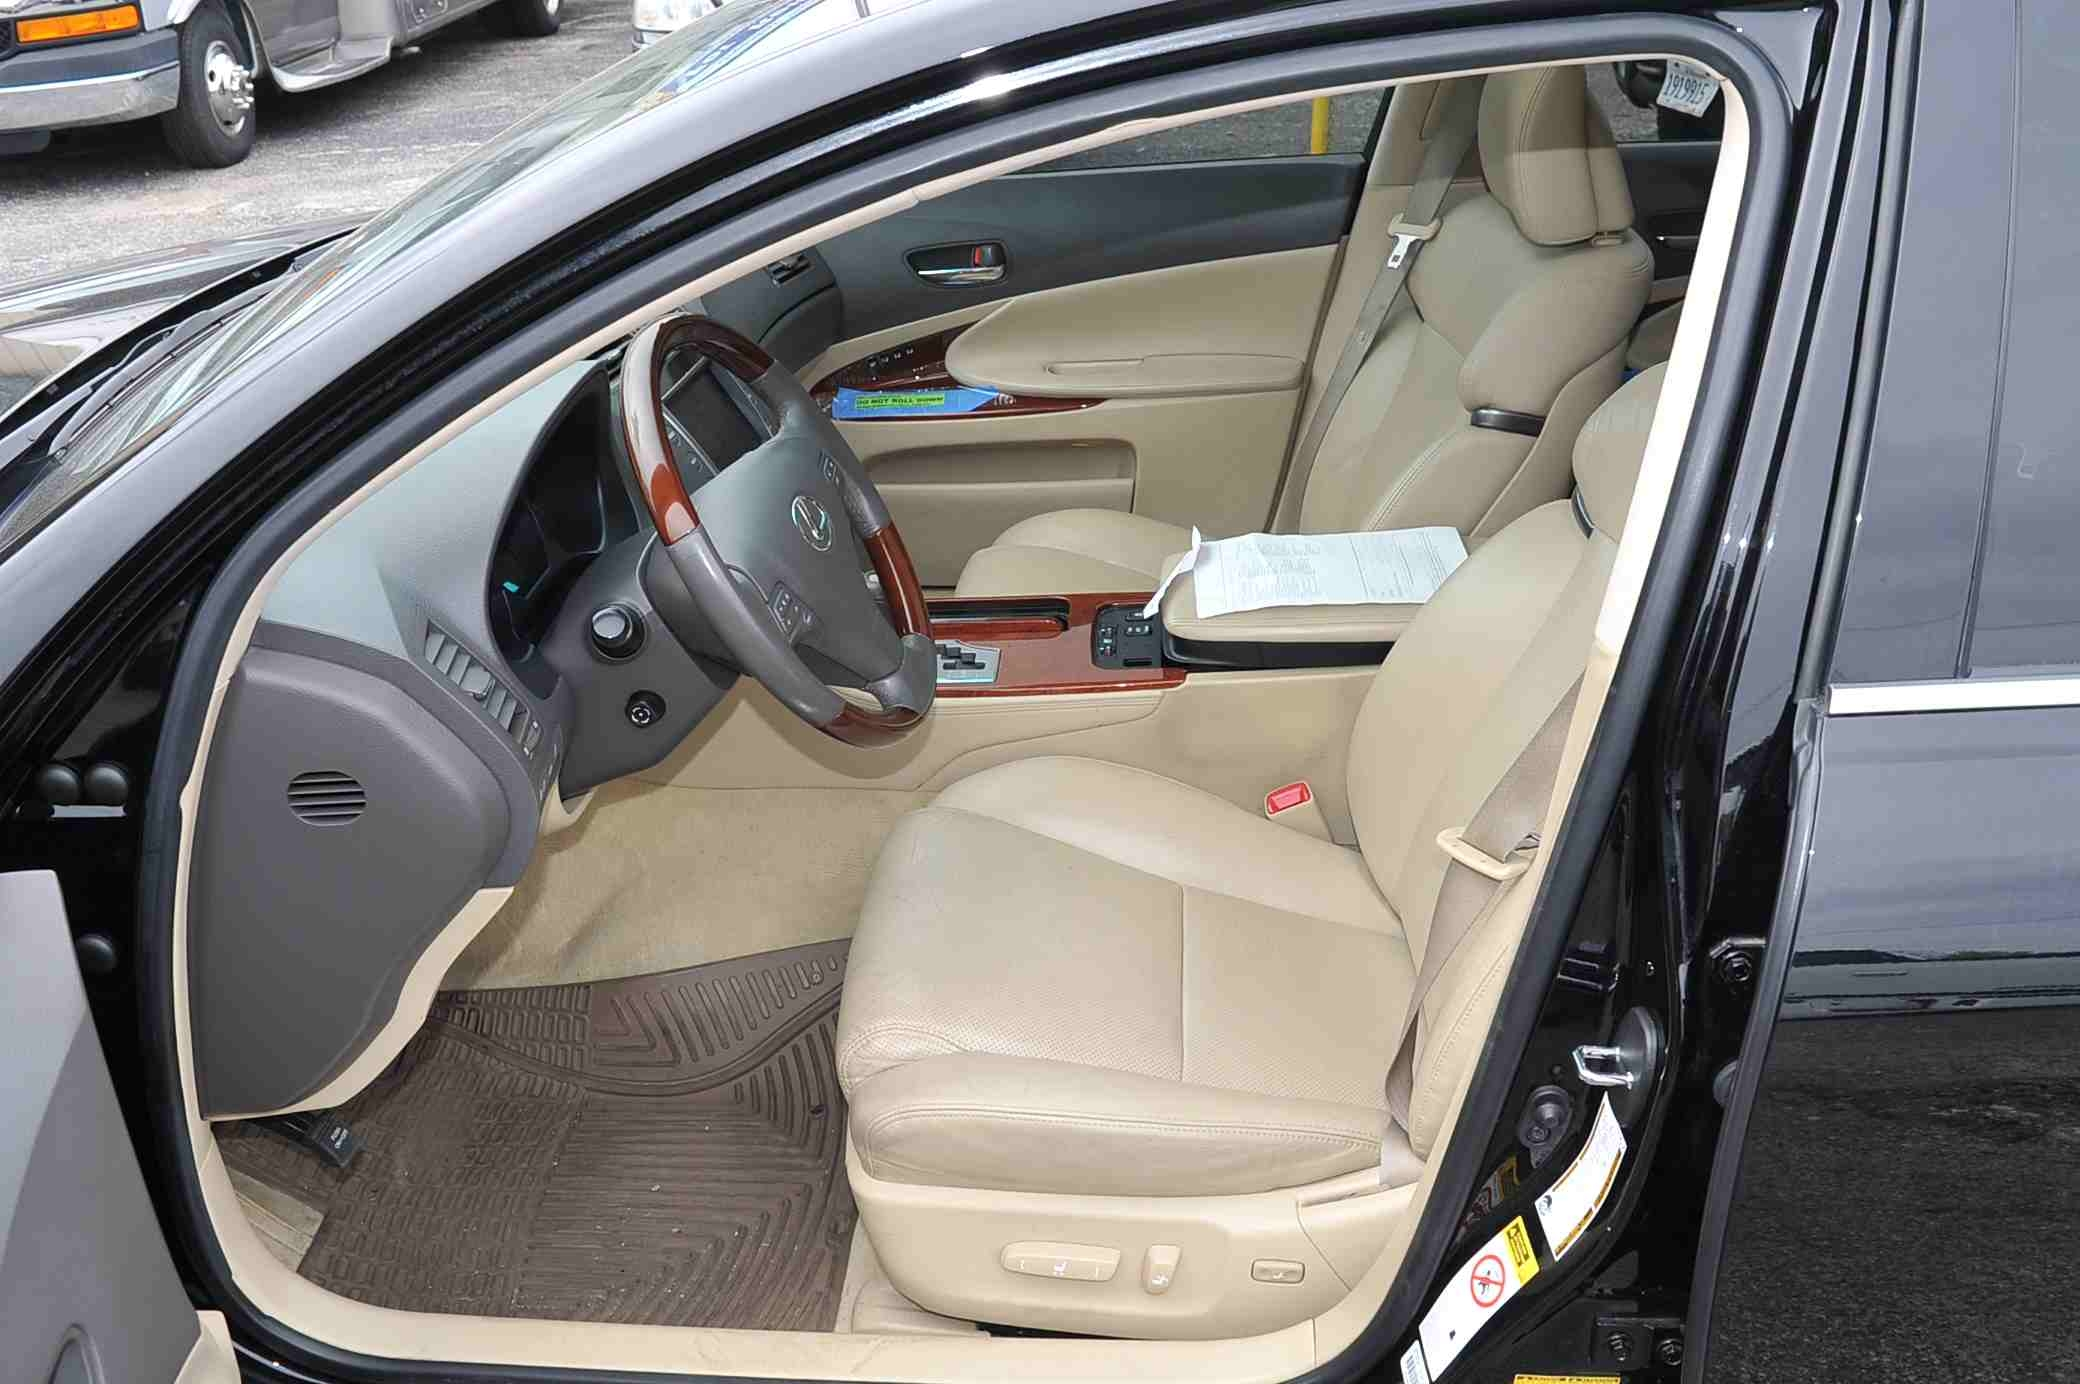 2008 Lexus GS350 Navigation Black AWD Sedan Sale Lake Villa Lake Zurich Lakemoor Milwaukee